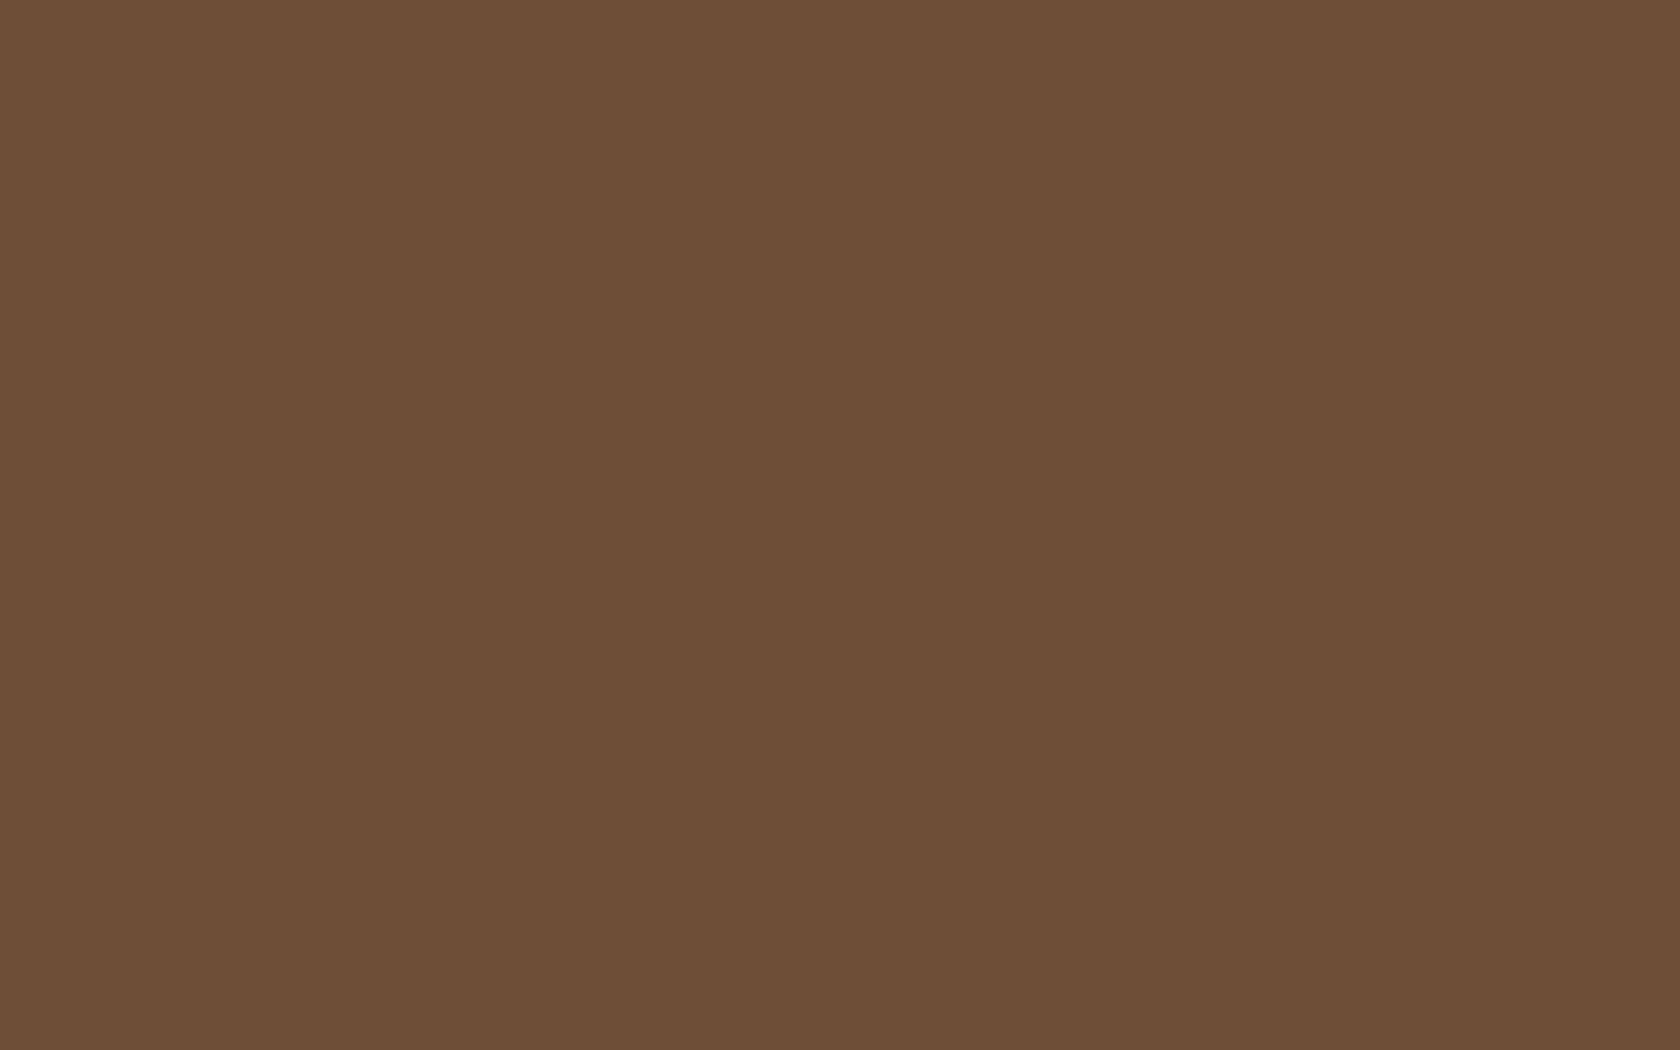 1680x1050 Tuscan Brown Solid Color Background